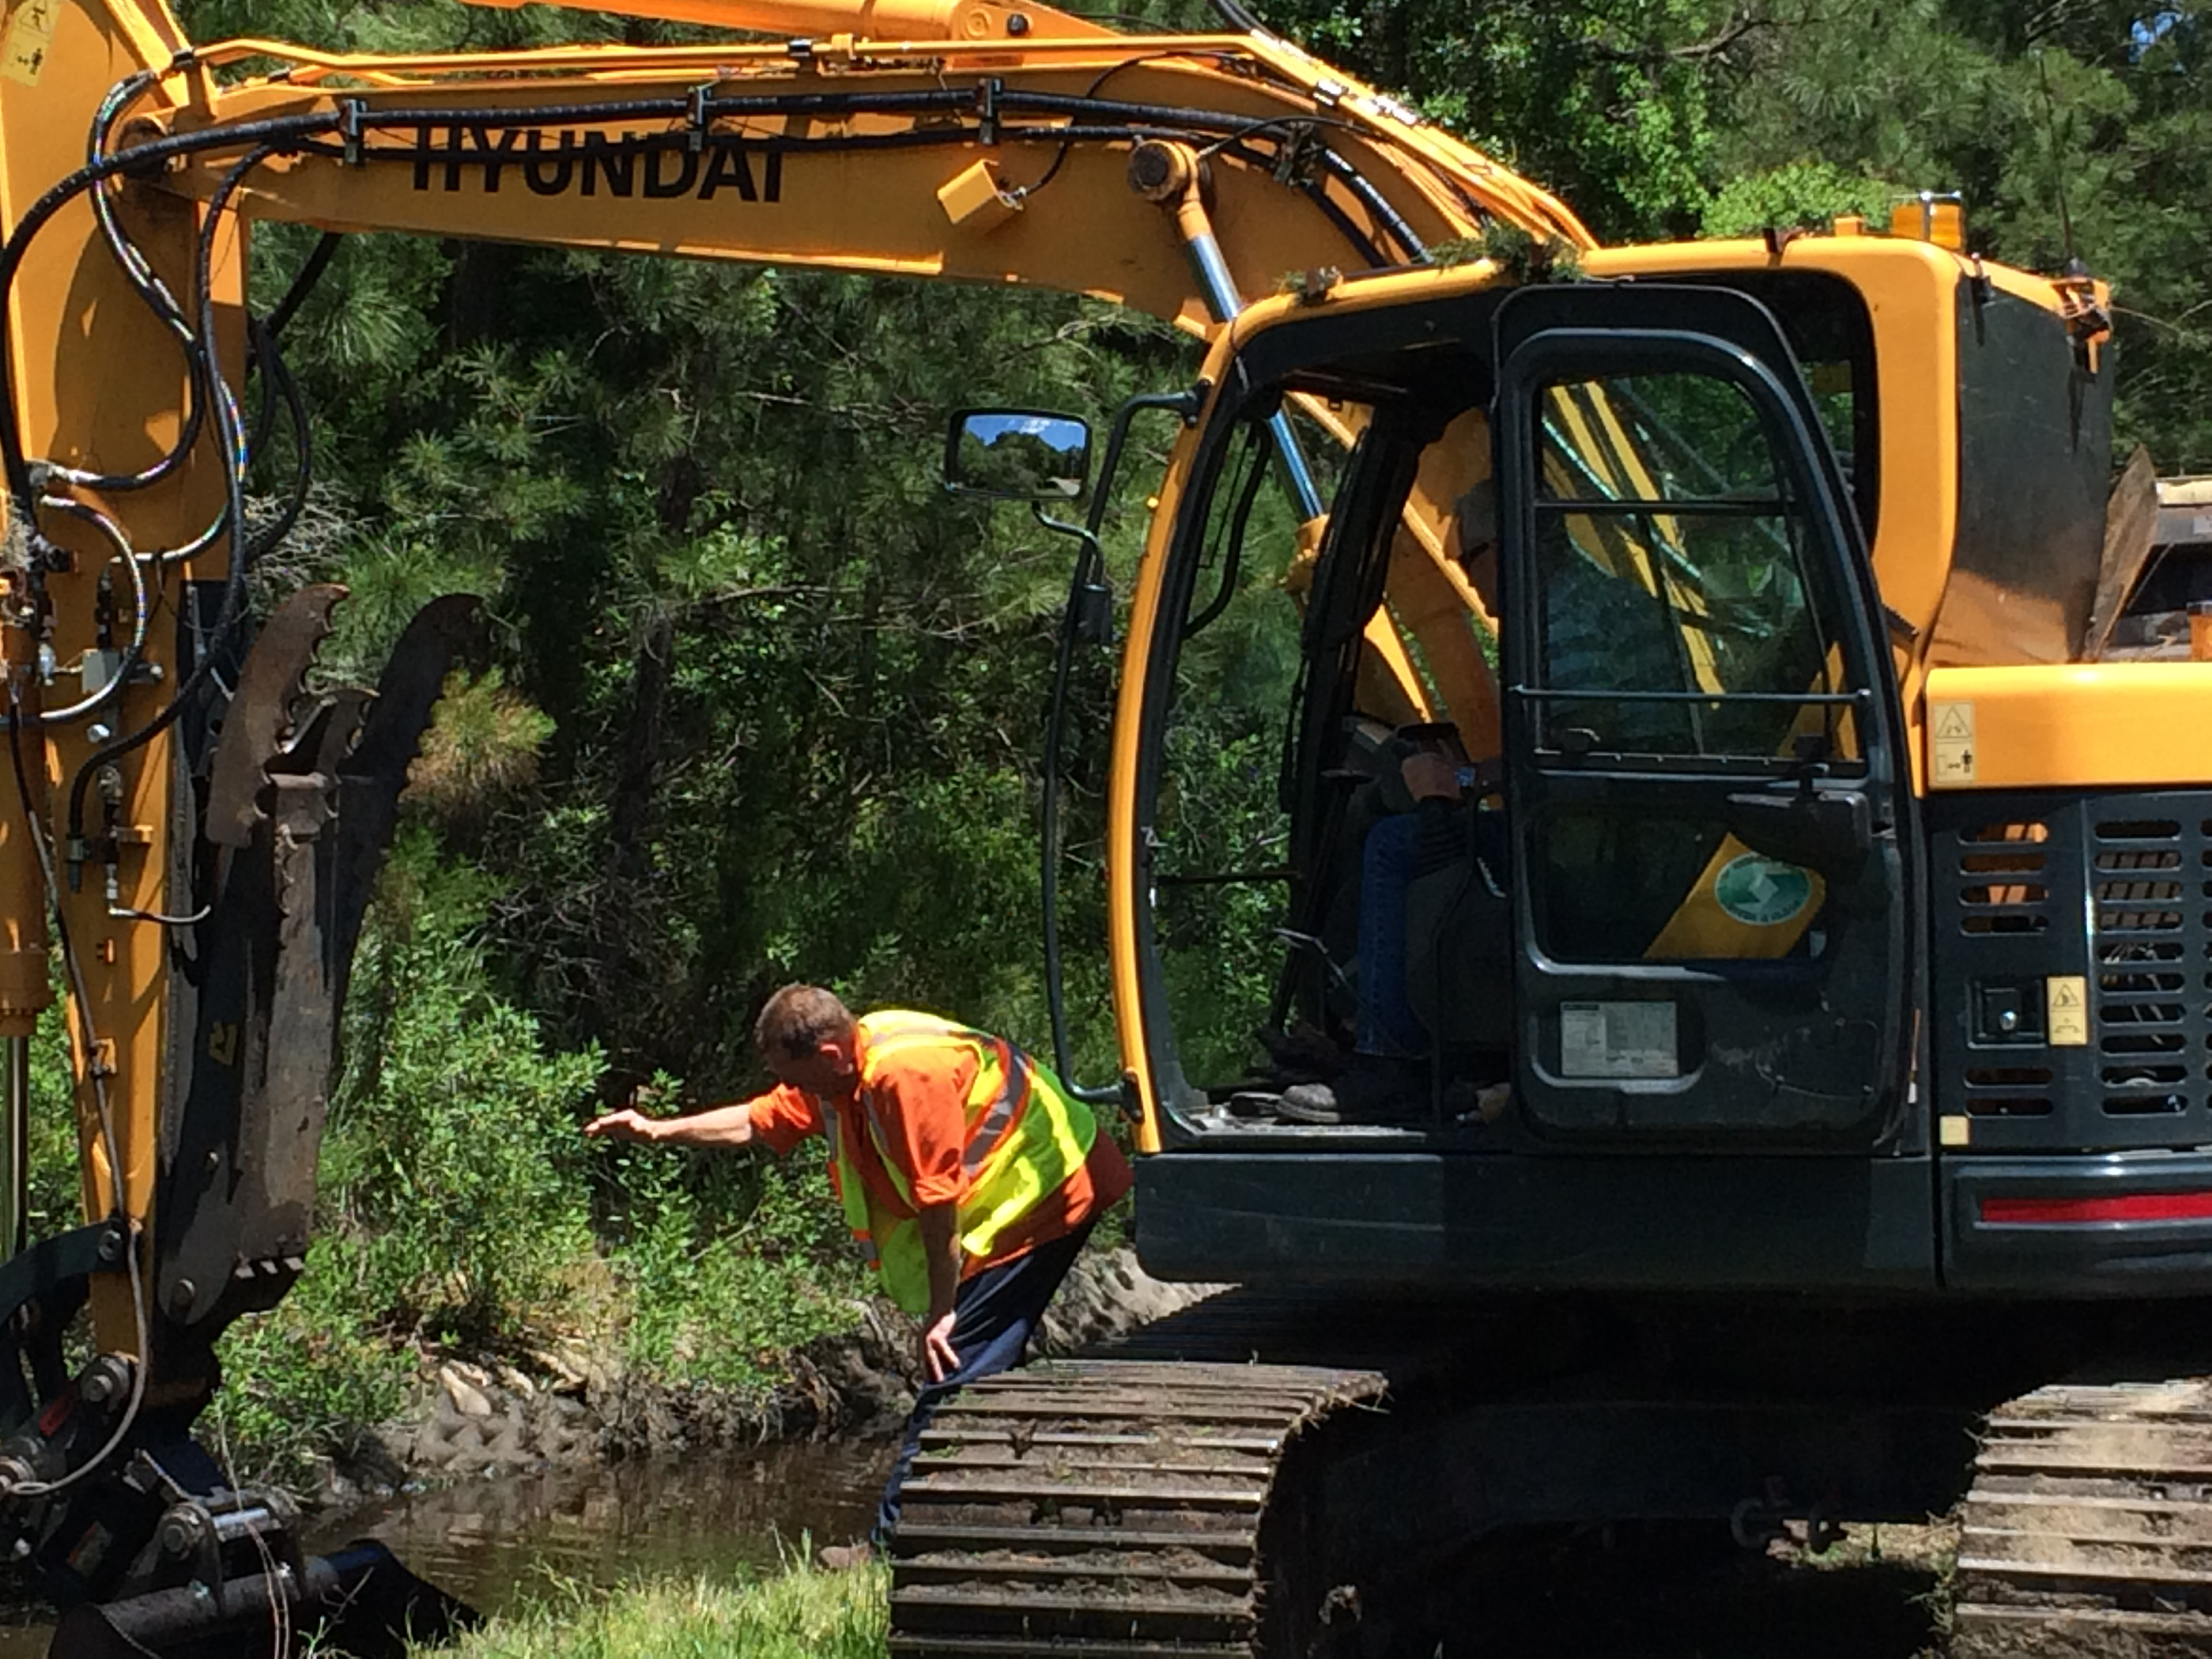 The City crew is use heavy equipment to prevent flooding by ensuring ditches are clear to convey the storm water.